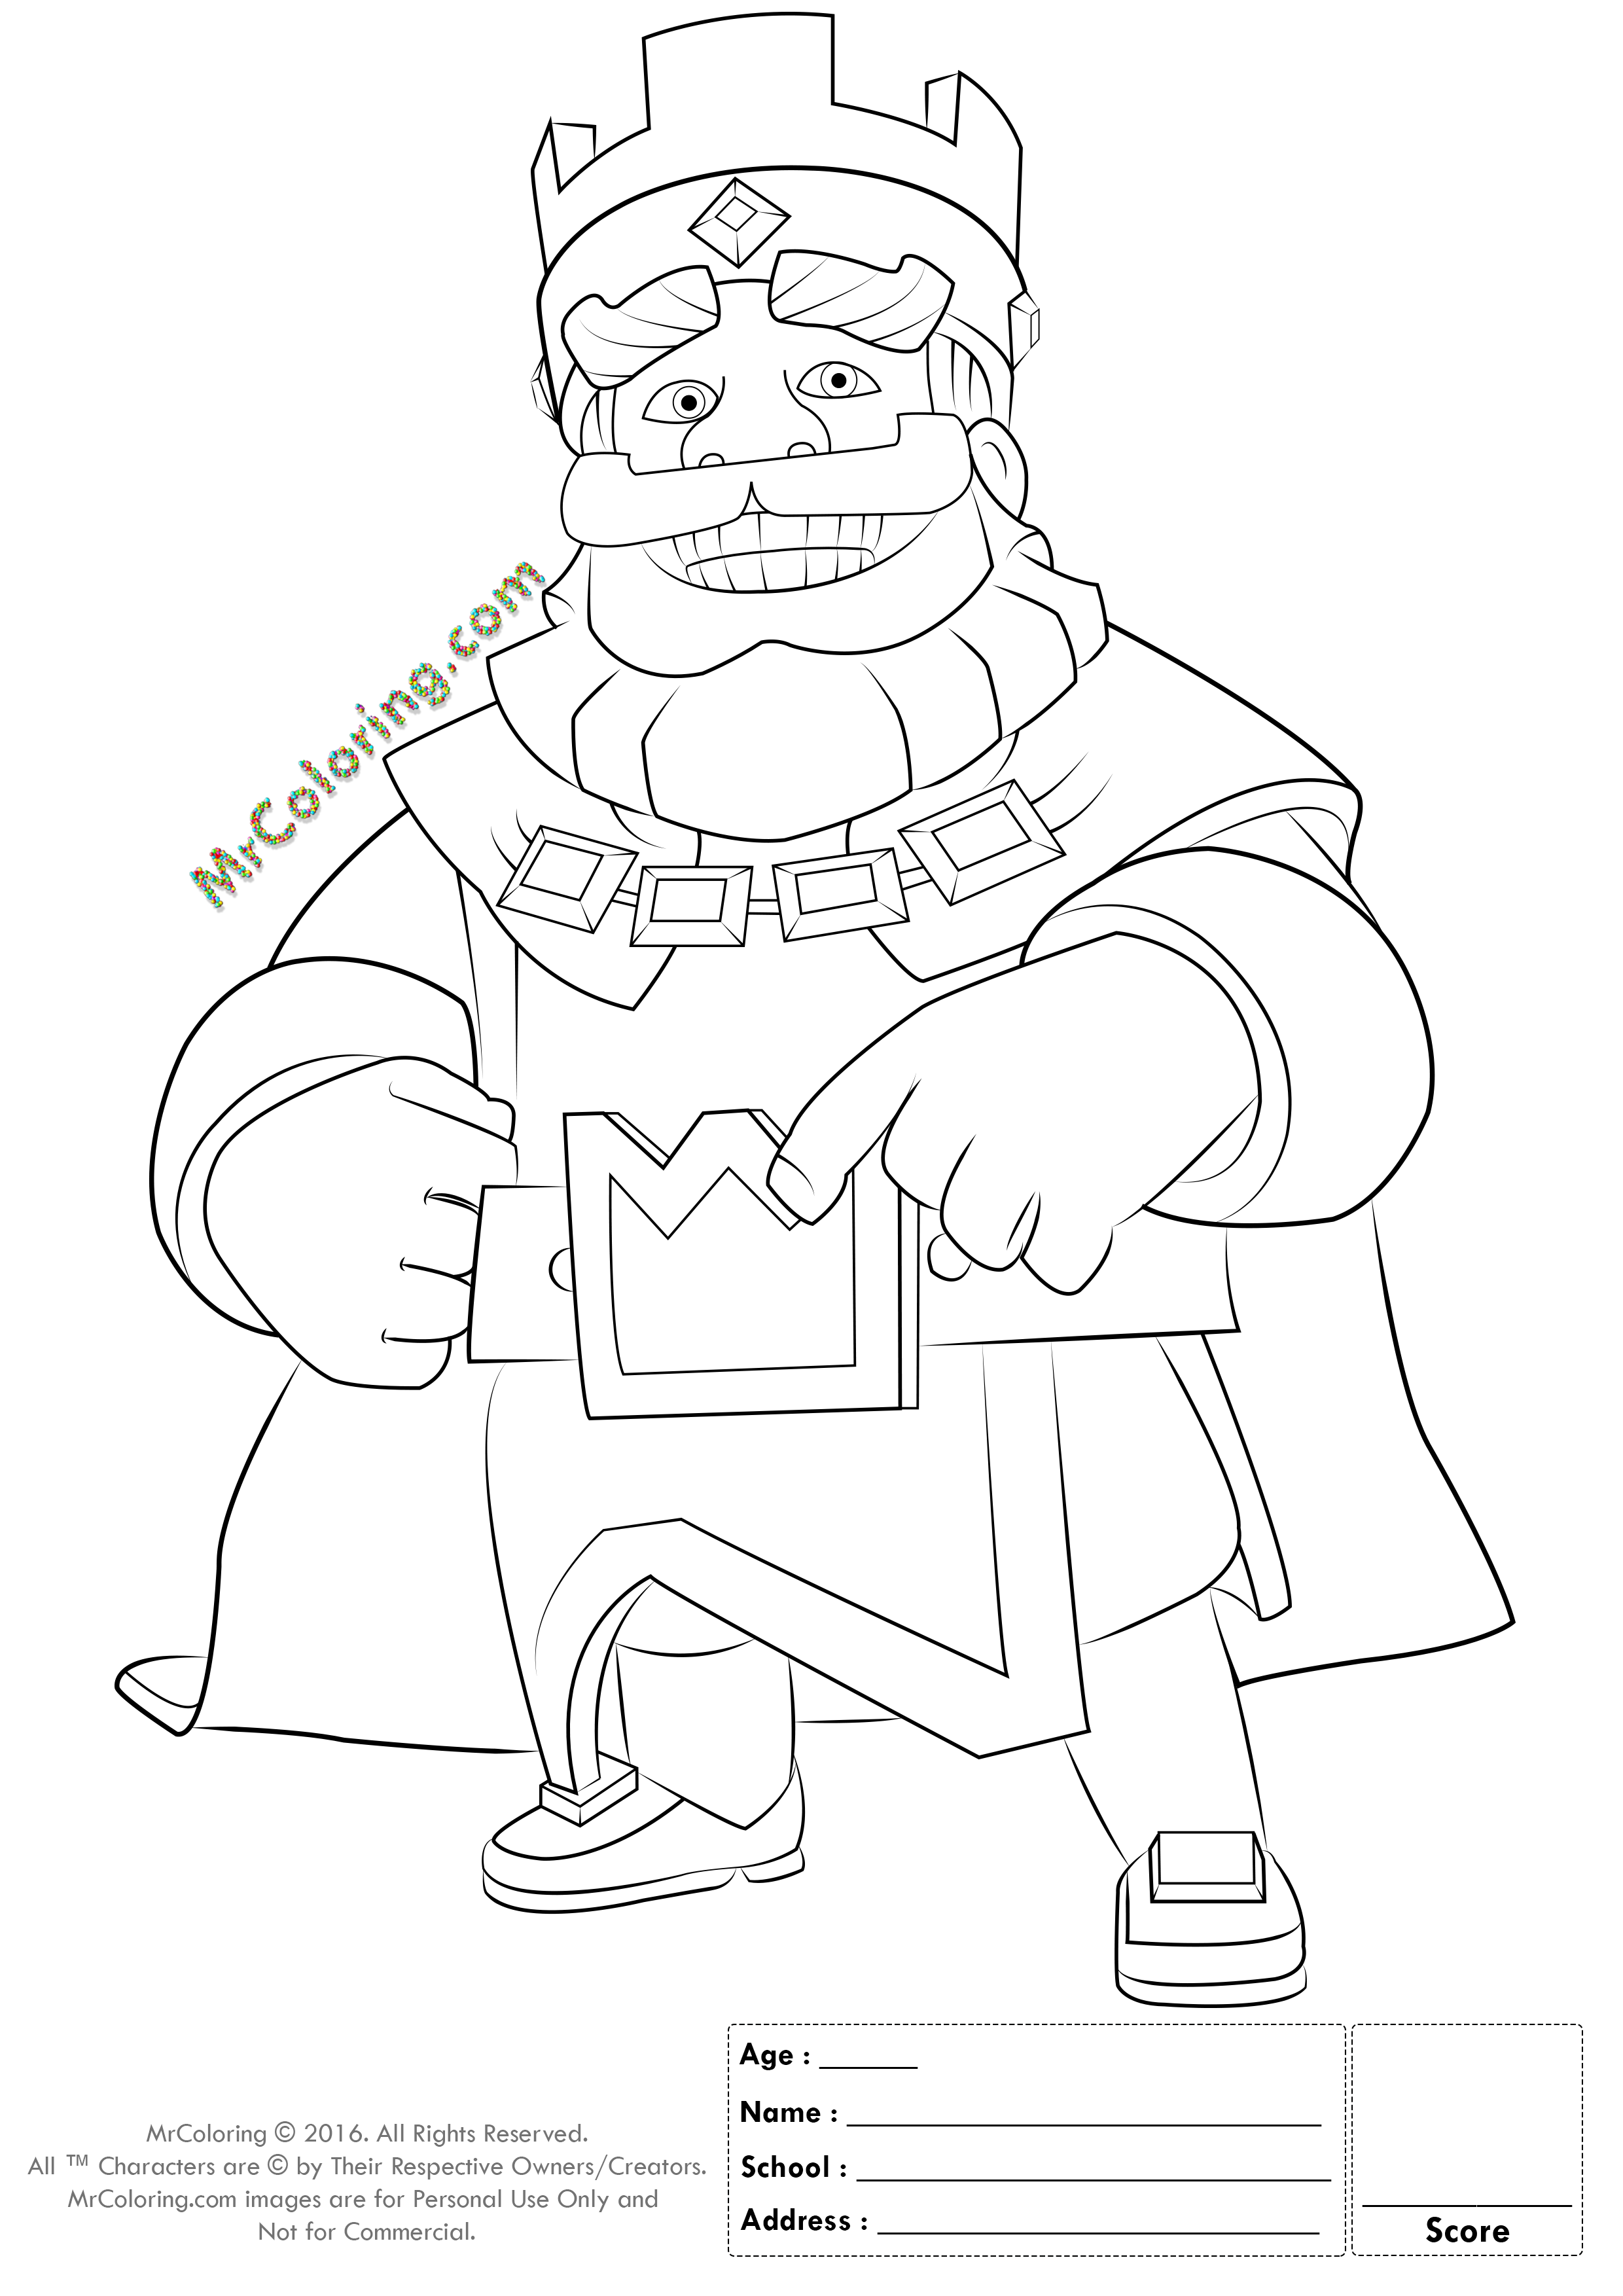 info file name blue king clash royale coloring pages 2 file type png size a4 21 cm x 297 cm 710 kb creator mrcoloringcom design idea clash - Clash Royale Coloring Pages